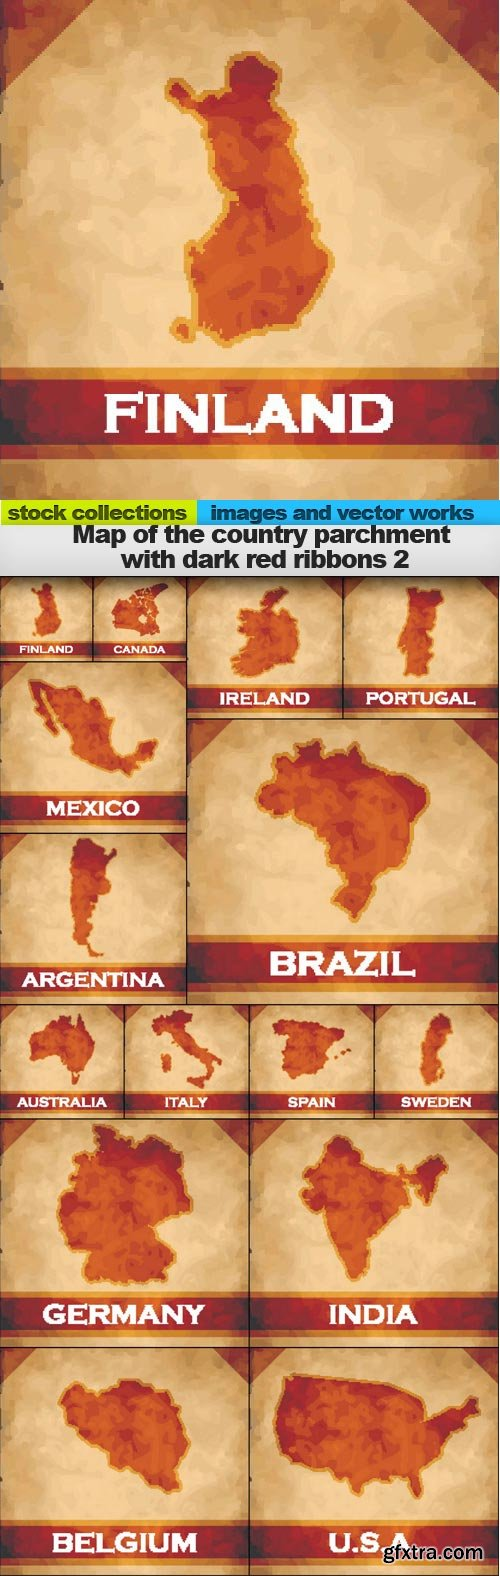 Map of the country parchment with dark red ribbons 2,  15 xEPS